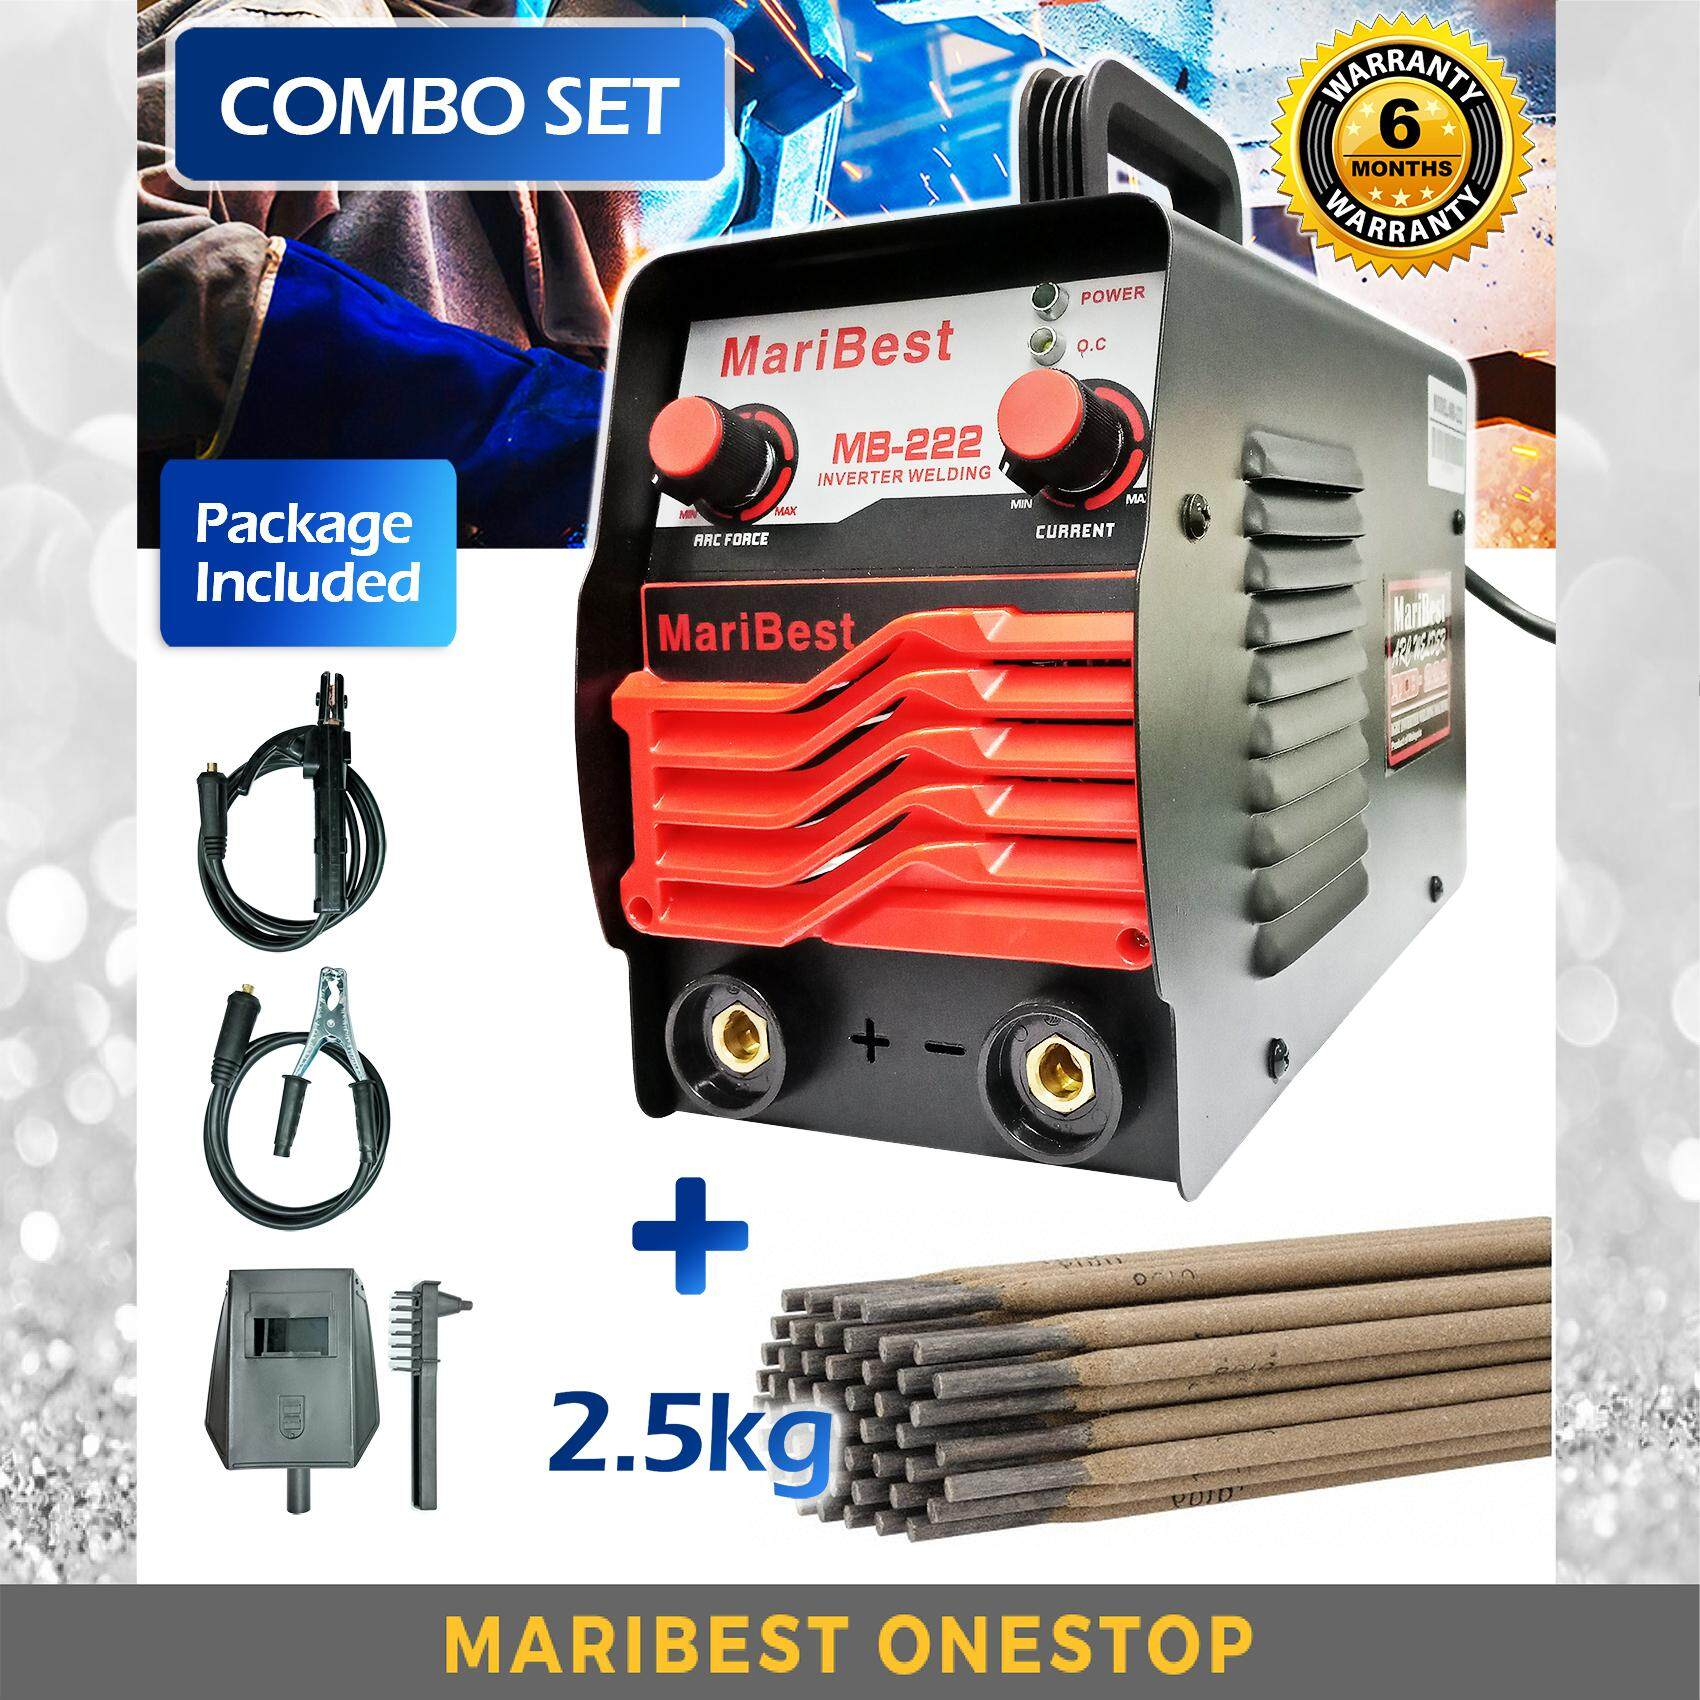 COMBO SET MARIBEST INVERTER WELDING MACHINE ARC WELDING MB-222 & E6013 ELECTRODES